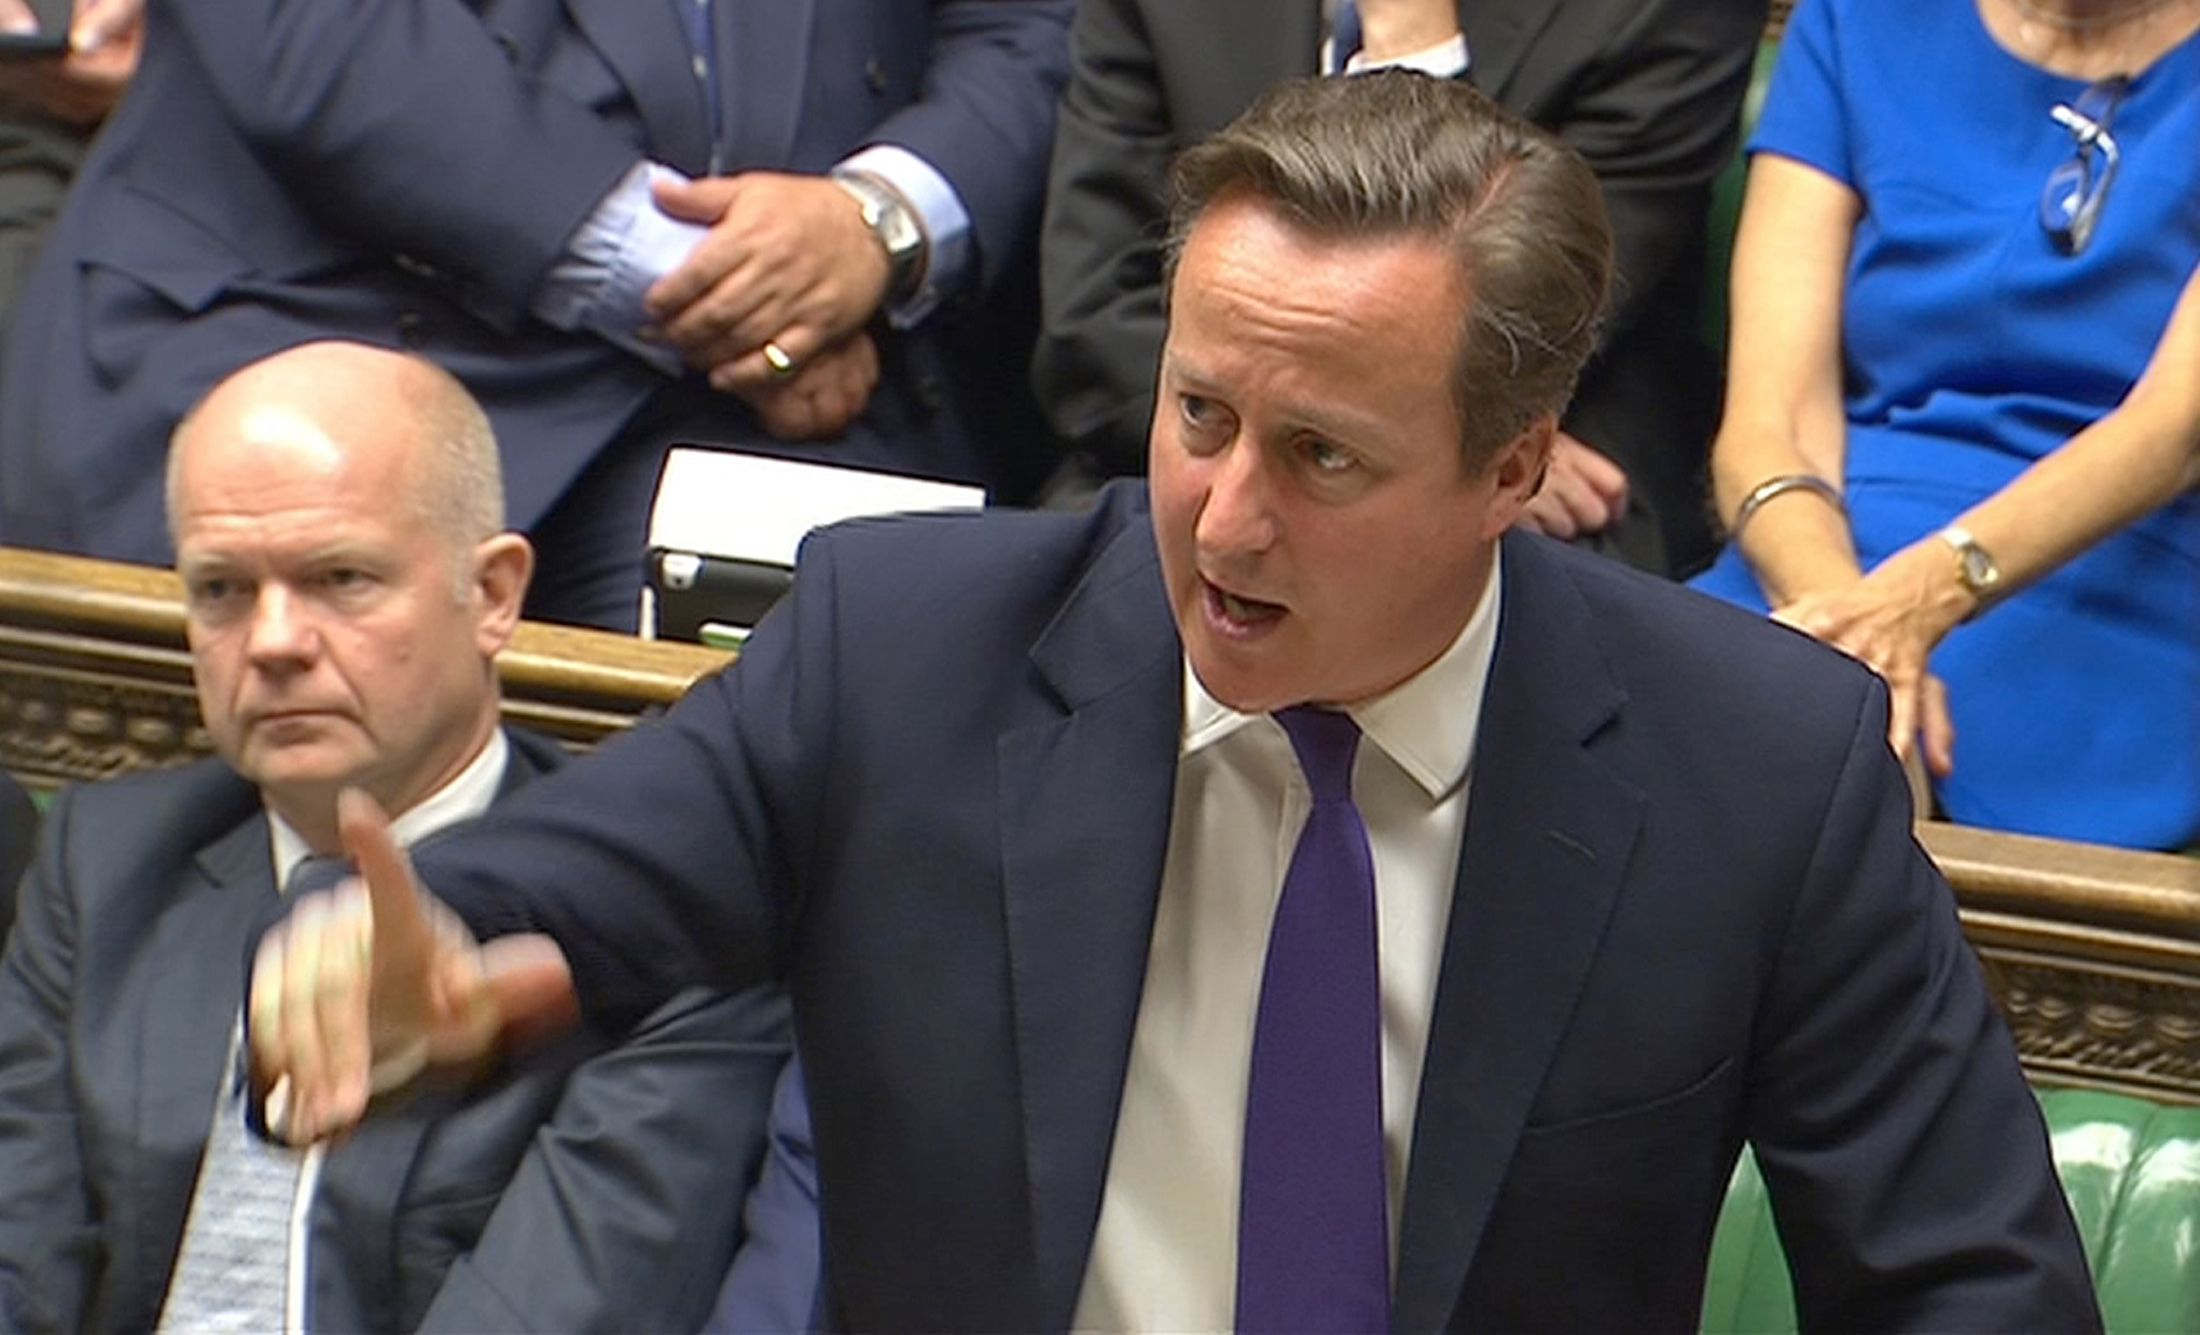 Britain's Prime Minister David Cameron addressing the House of Commons in central London